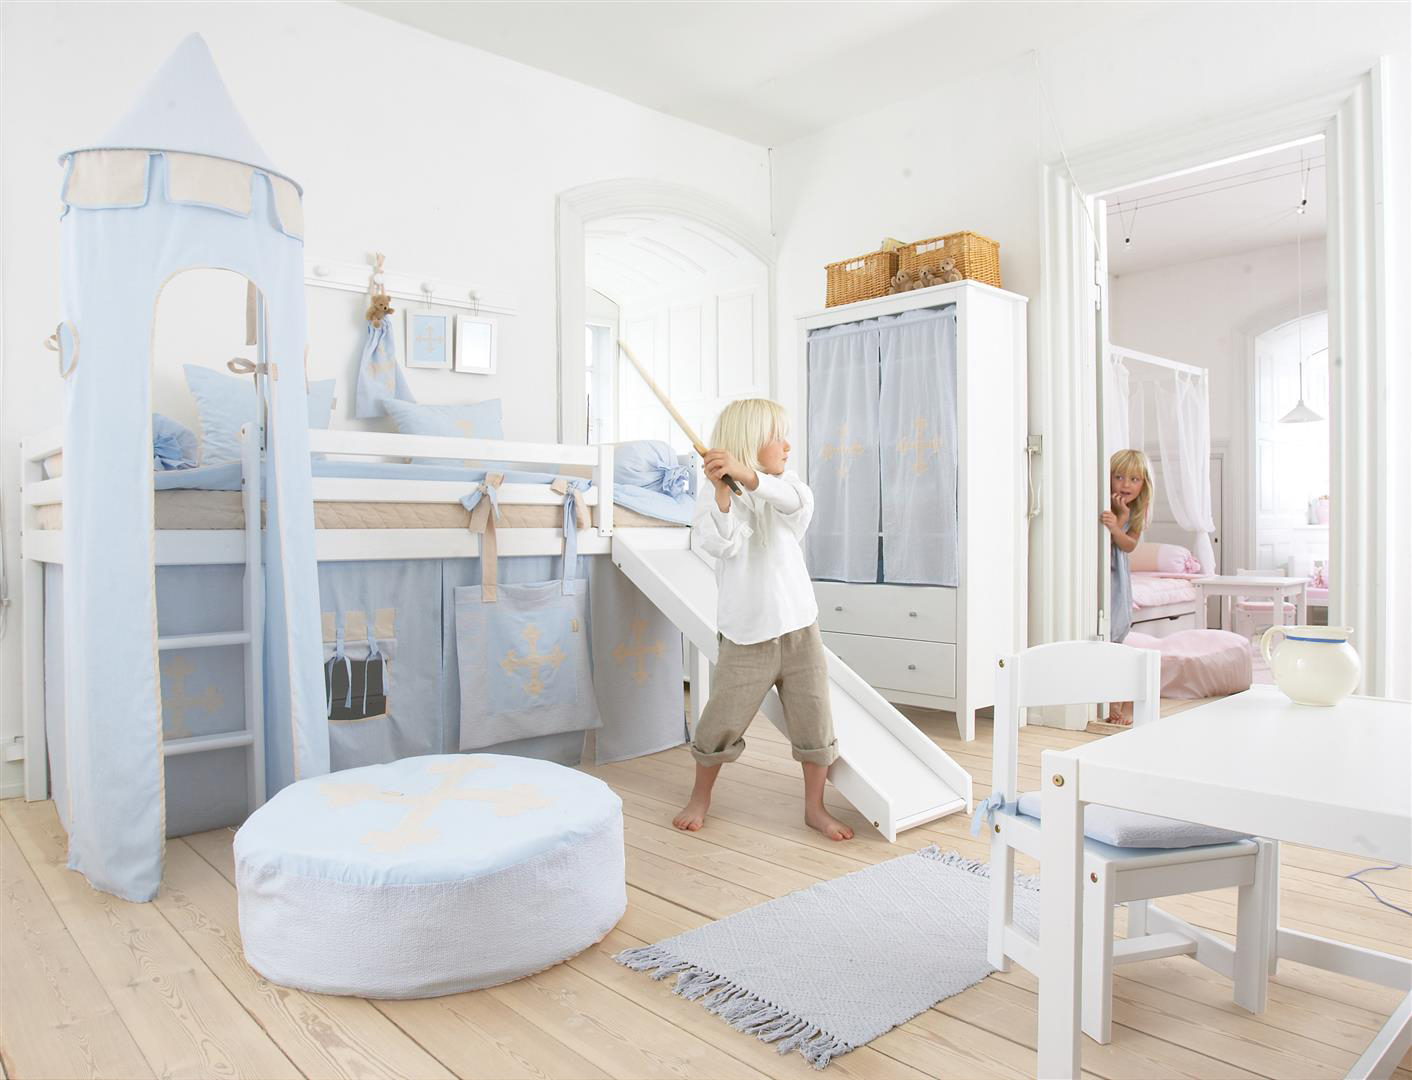 id e d co chambre enfant un sol pratique fun et original. Black Bedroom Furniture Sets. Home Design Ideas